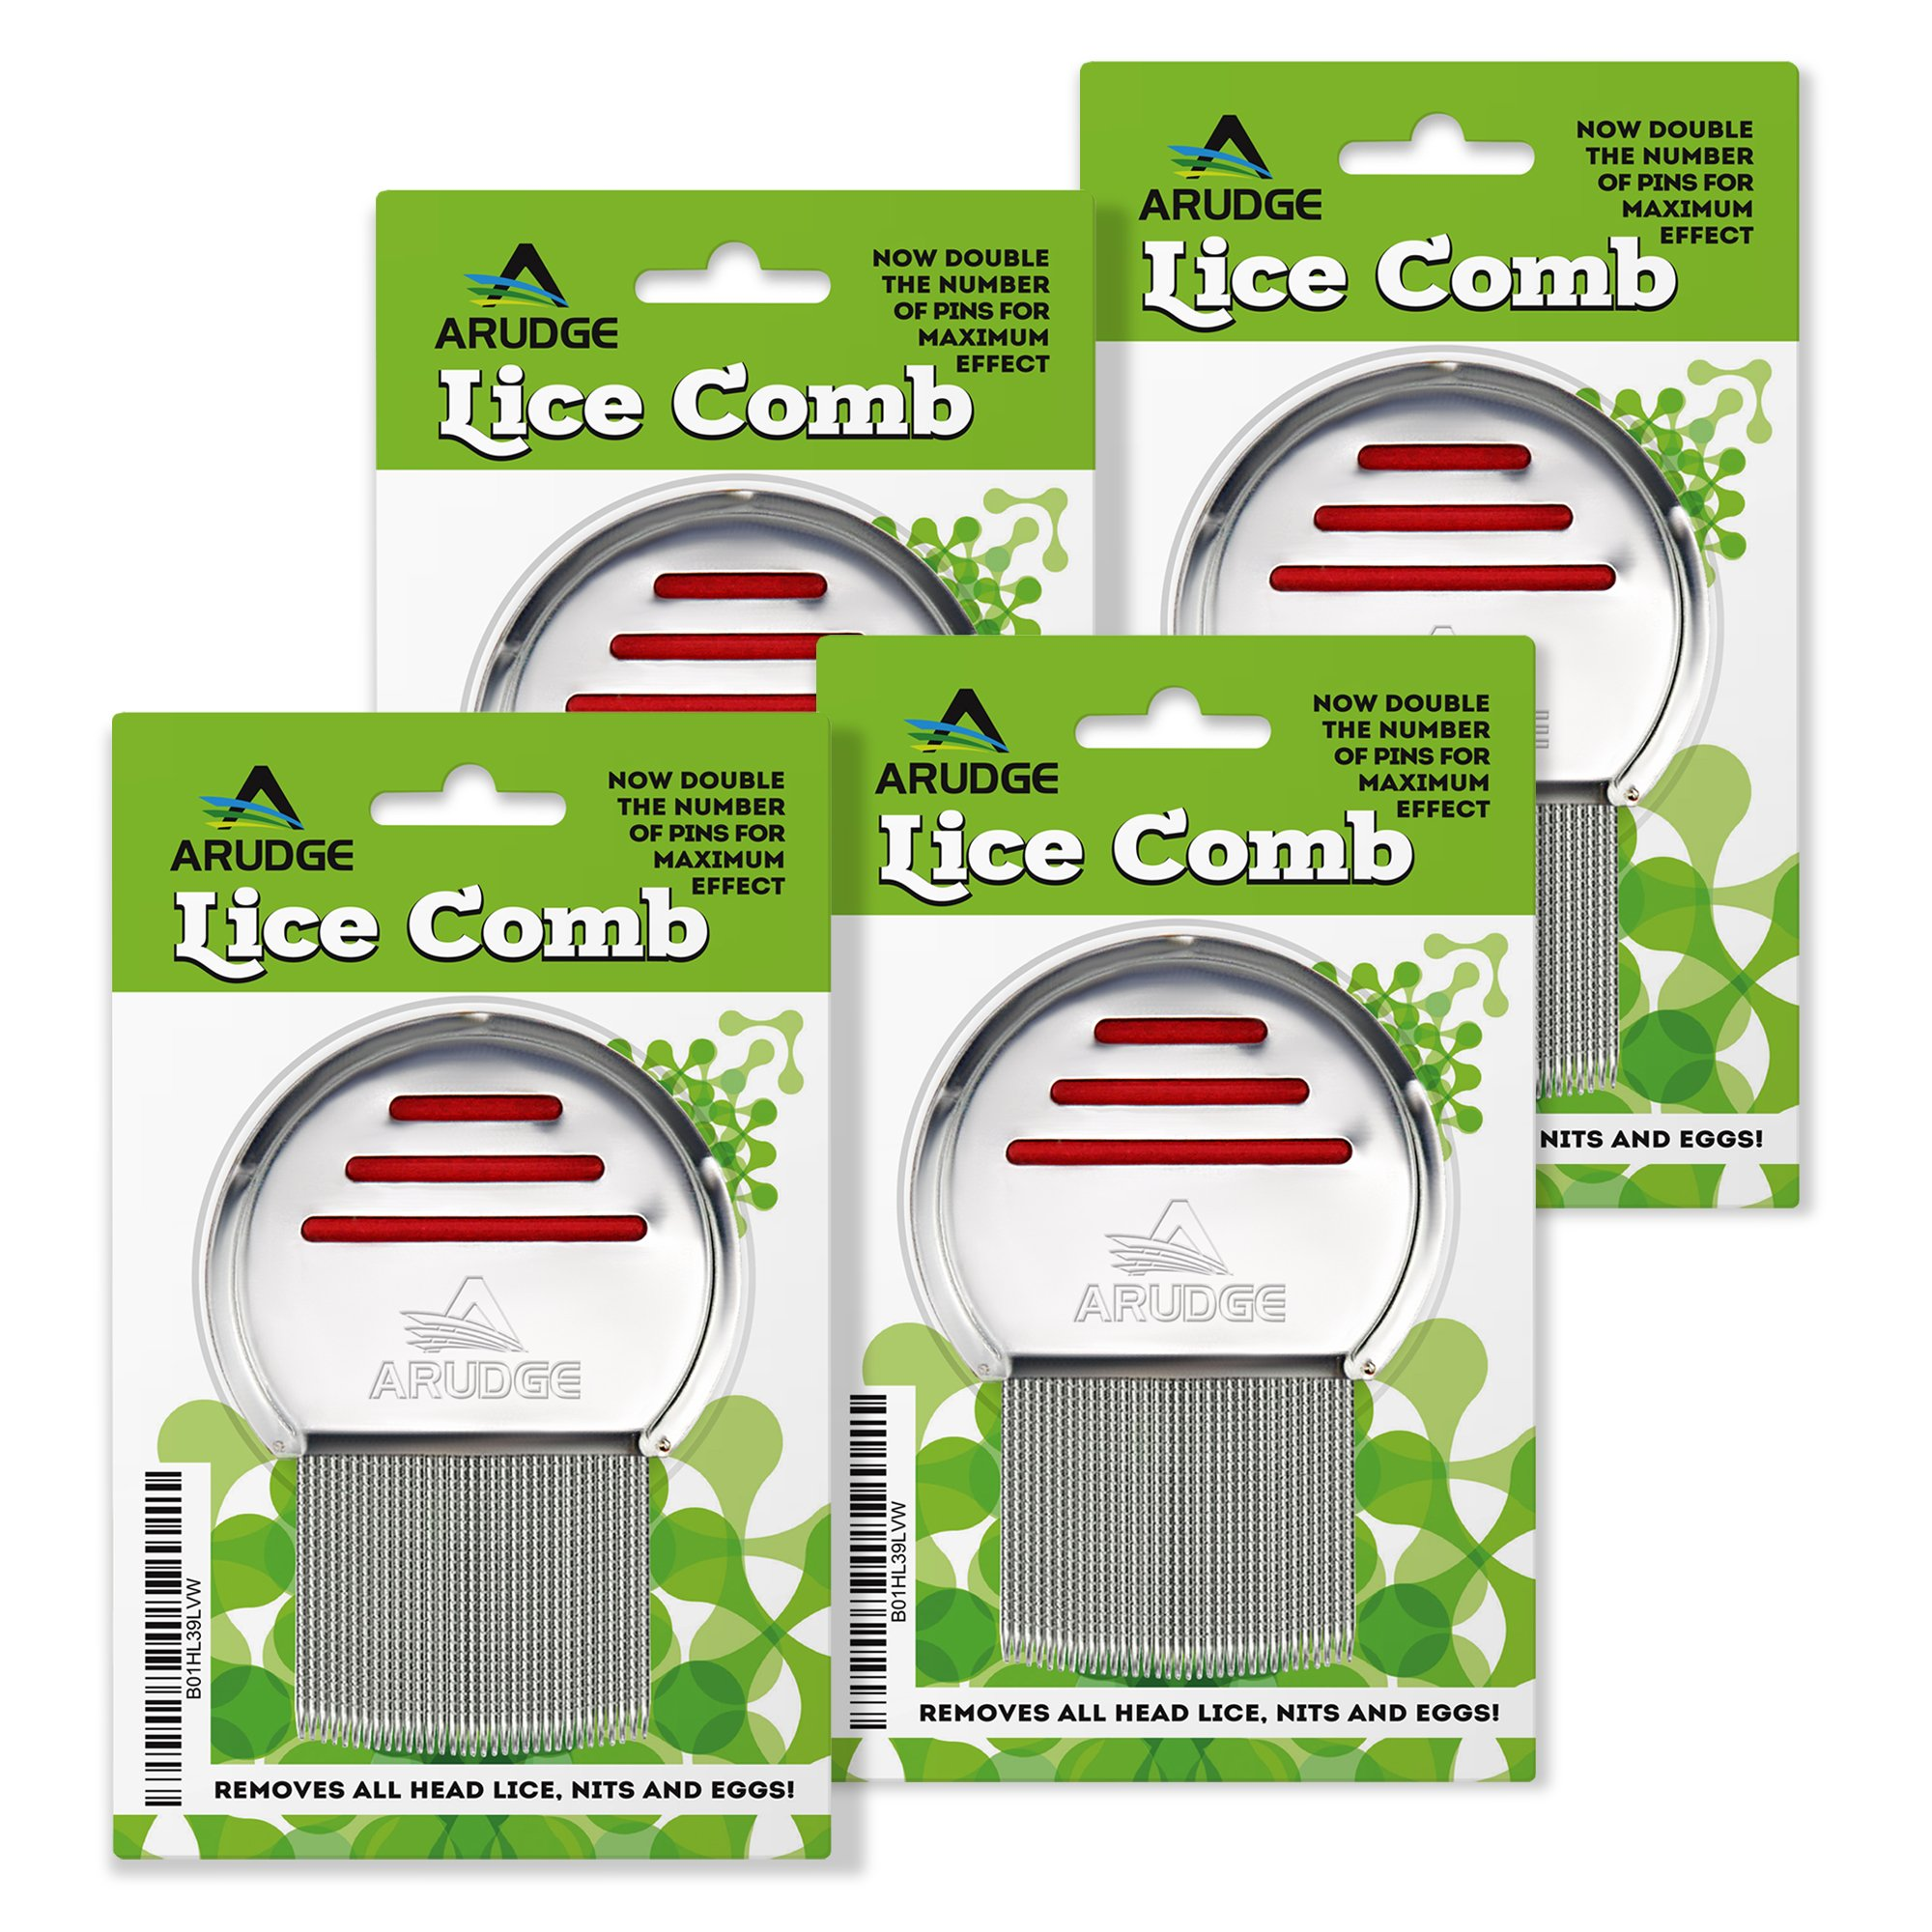 Head Lice Treatment, Egg & Nit Removal Terminator Comb By Arudge – Stainless Steel – Spiral Grooved Teeth – Ergonomic Design With Anti Slip Bands - 4 PACK